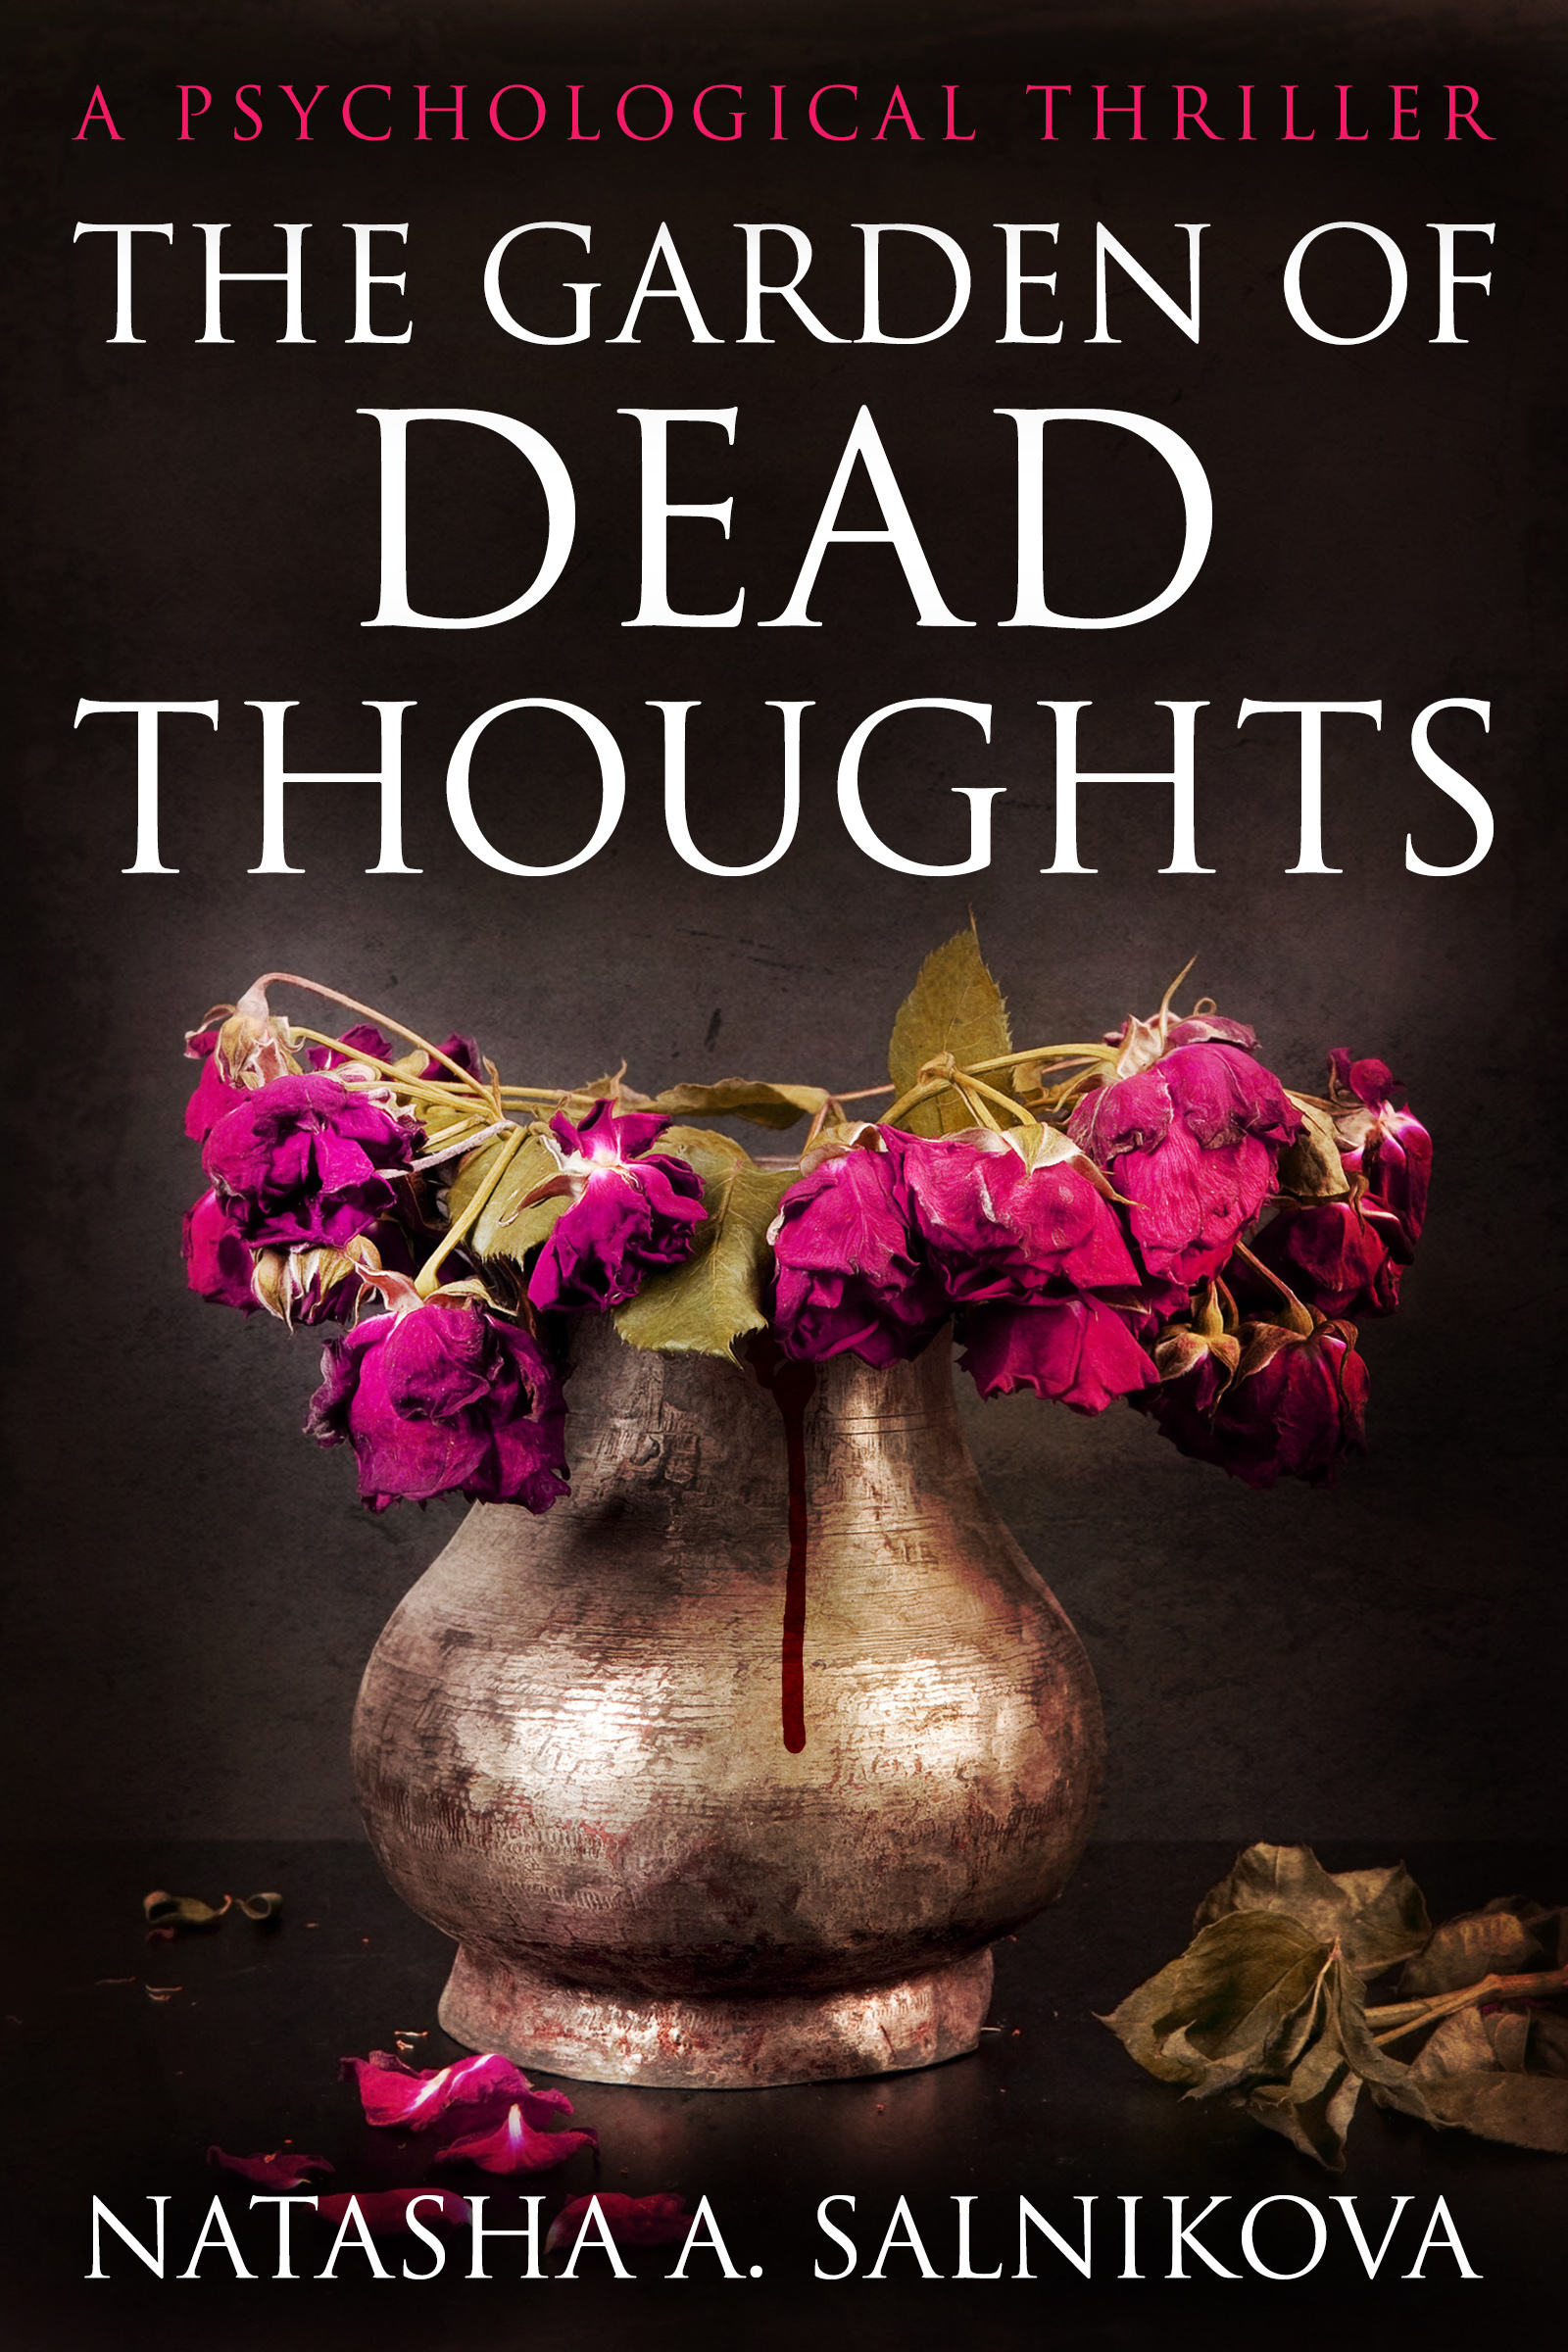 The garden of dead thoughts